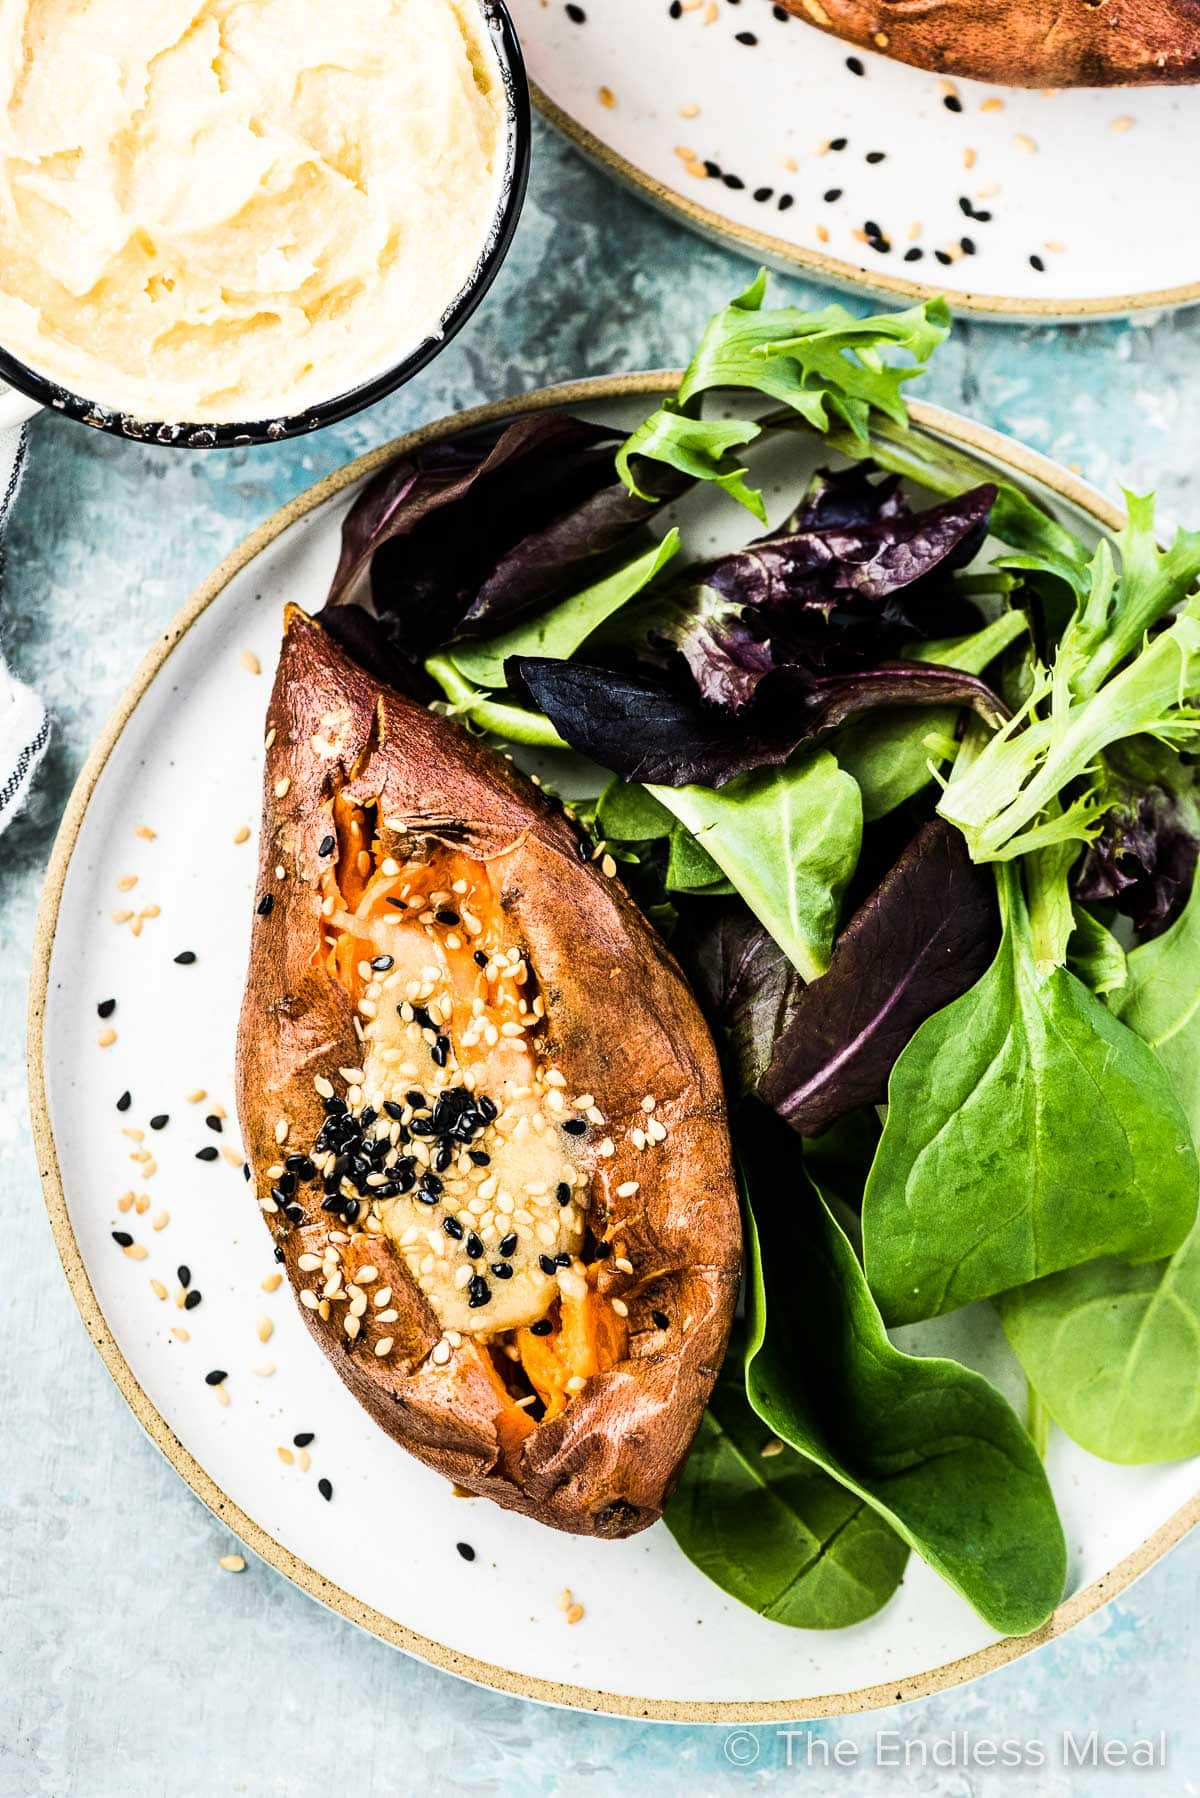 A roasted sweet potato on a plate with some salad and miso tahini butter melting on top.